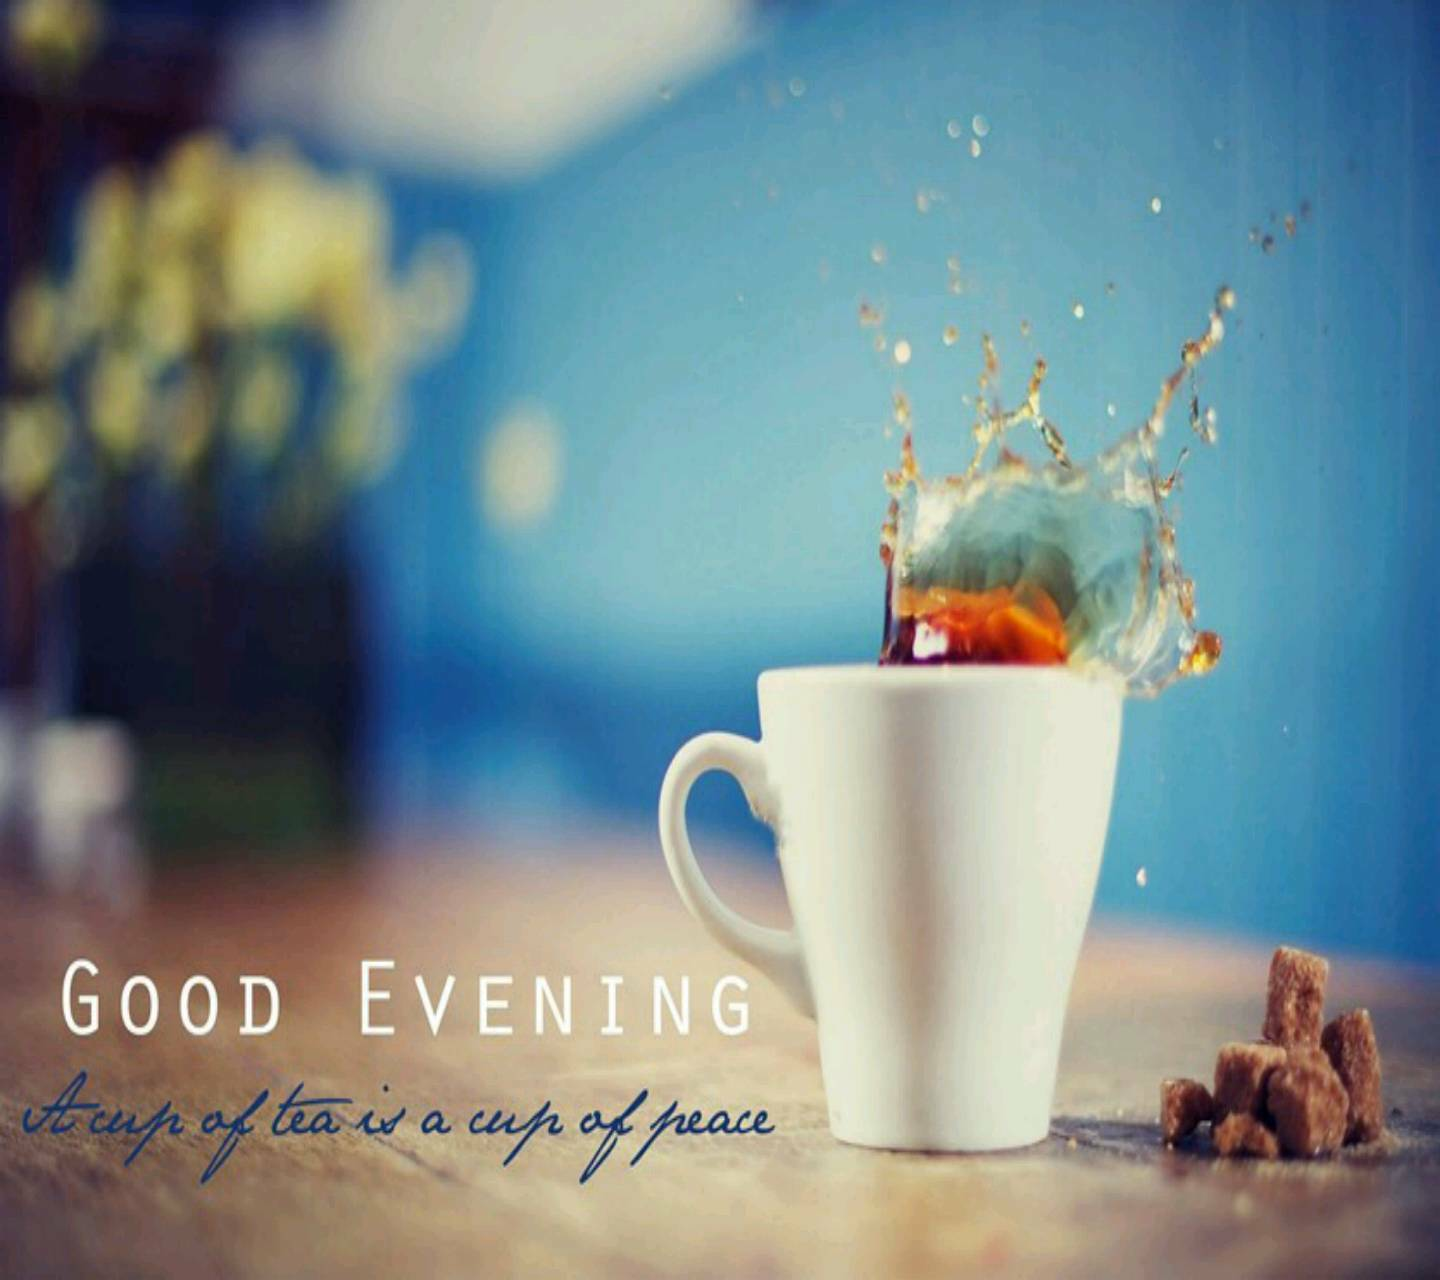 Good Evening Tea Hd Wallpaper By Angelsehar 3d Free On Zedge